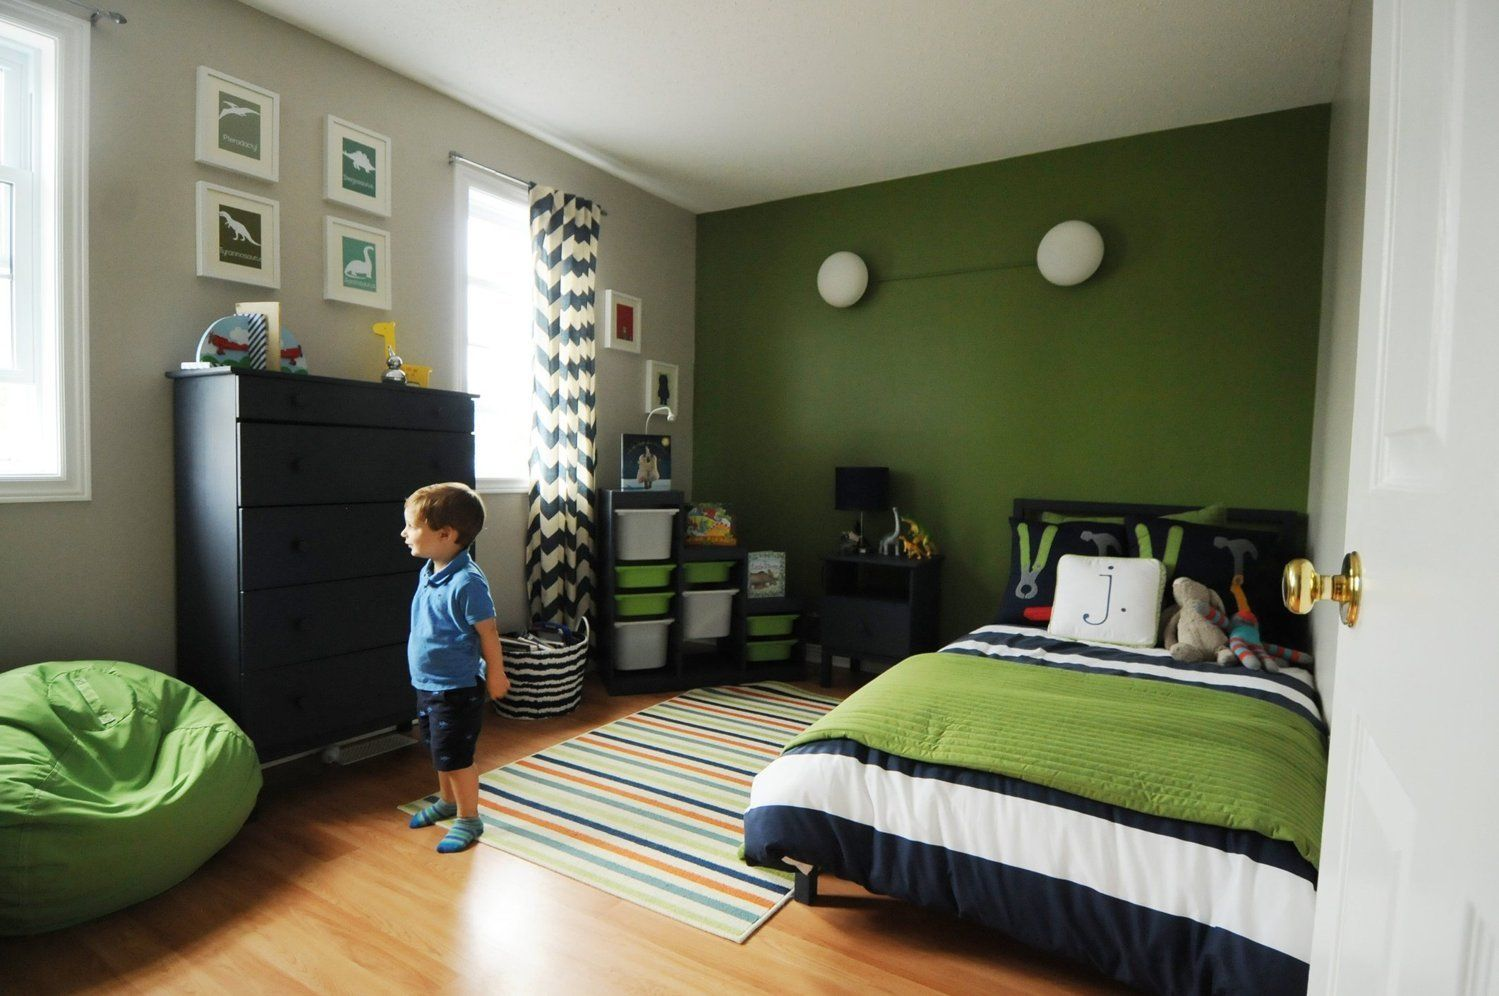 Joseph S Champagne Toddler Room On A Beer Budget Green Boys